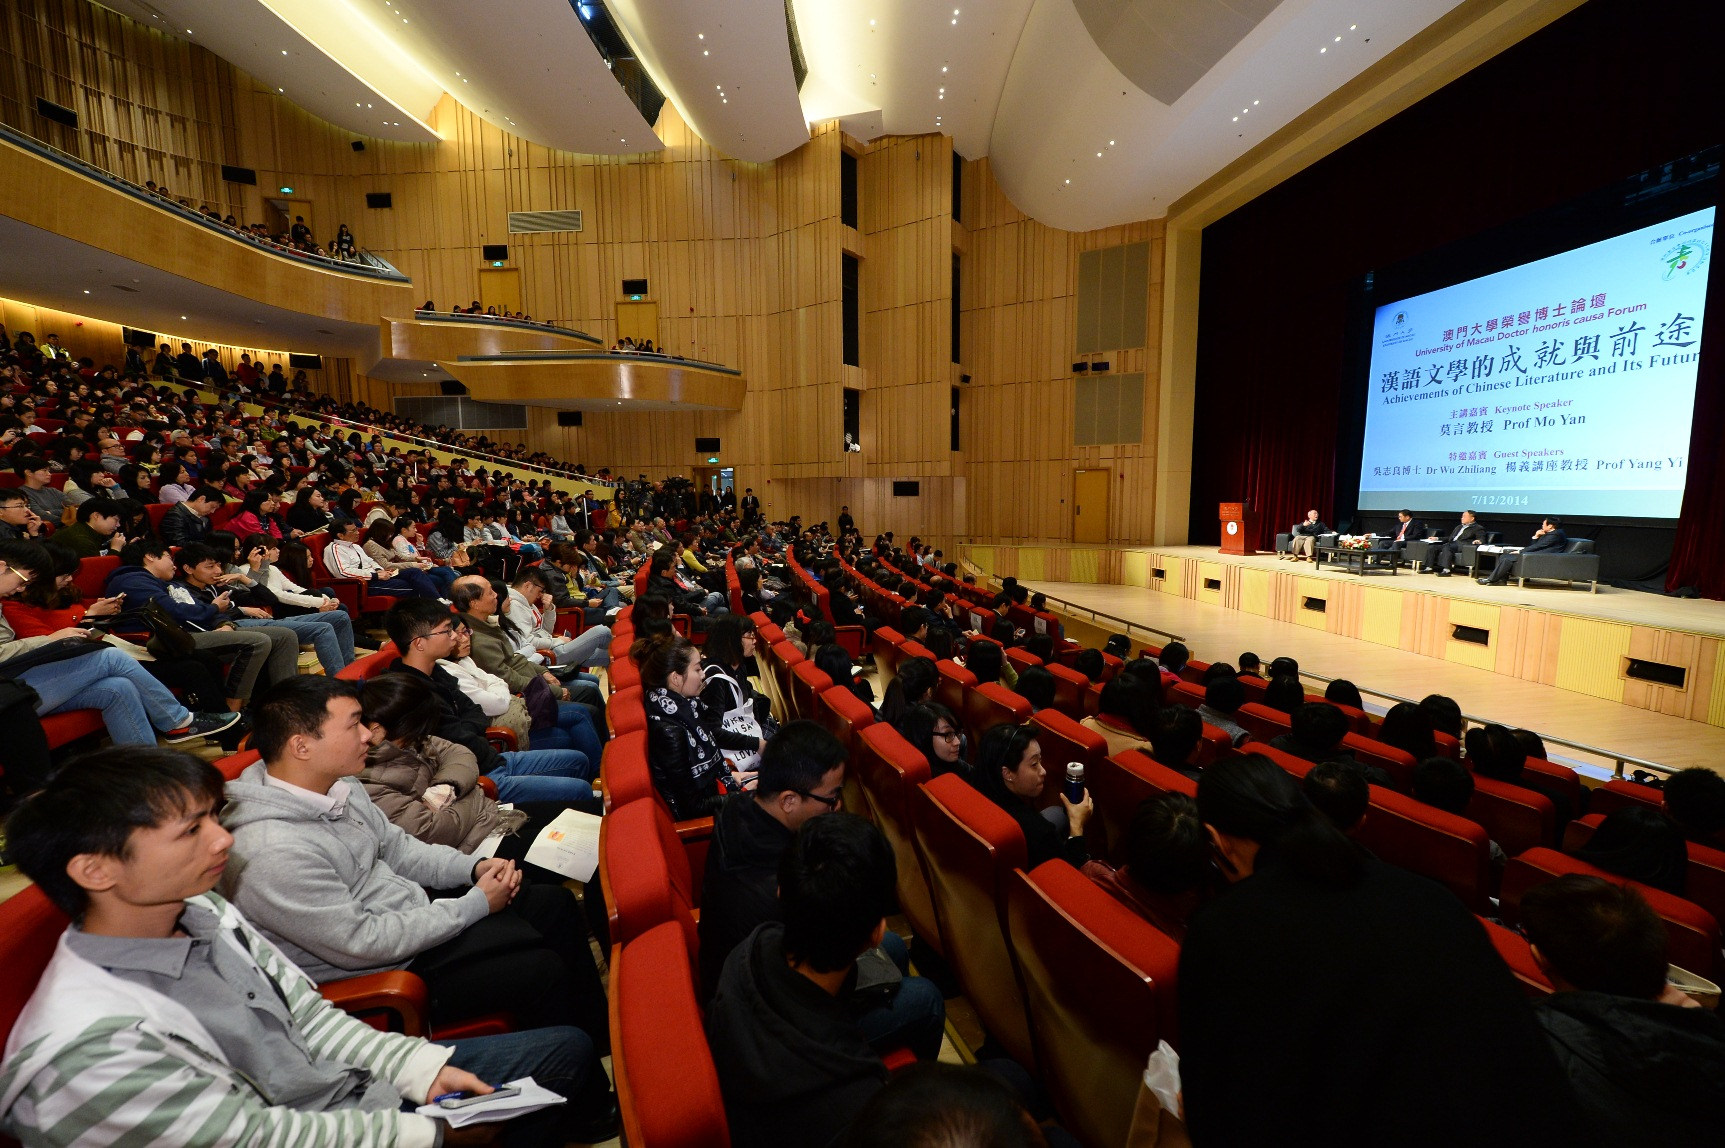 The forum attracts a full-house audience